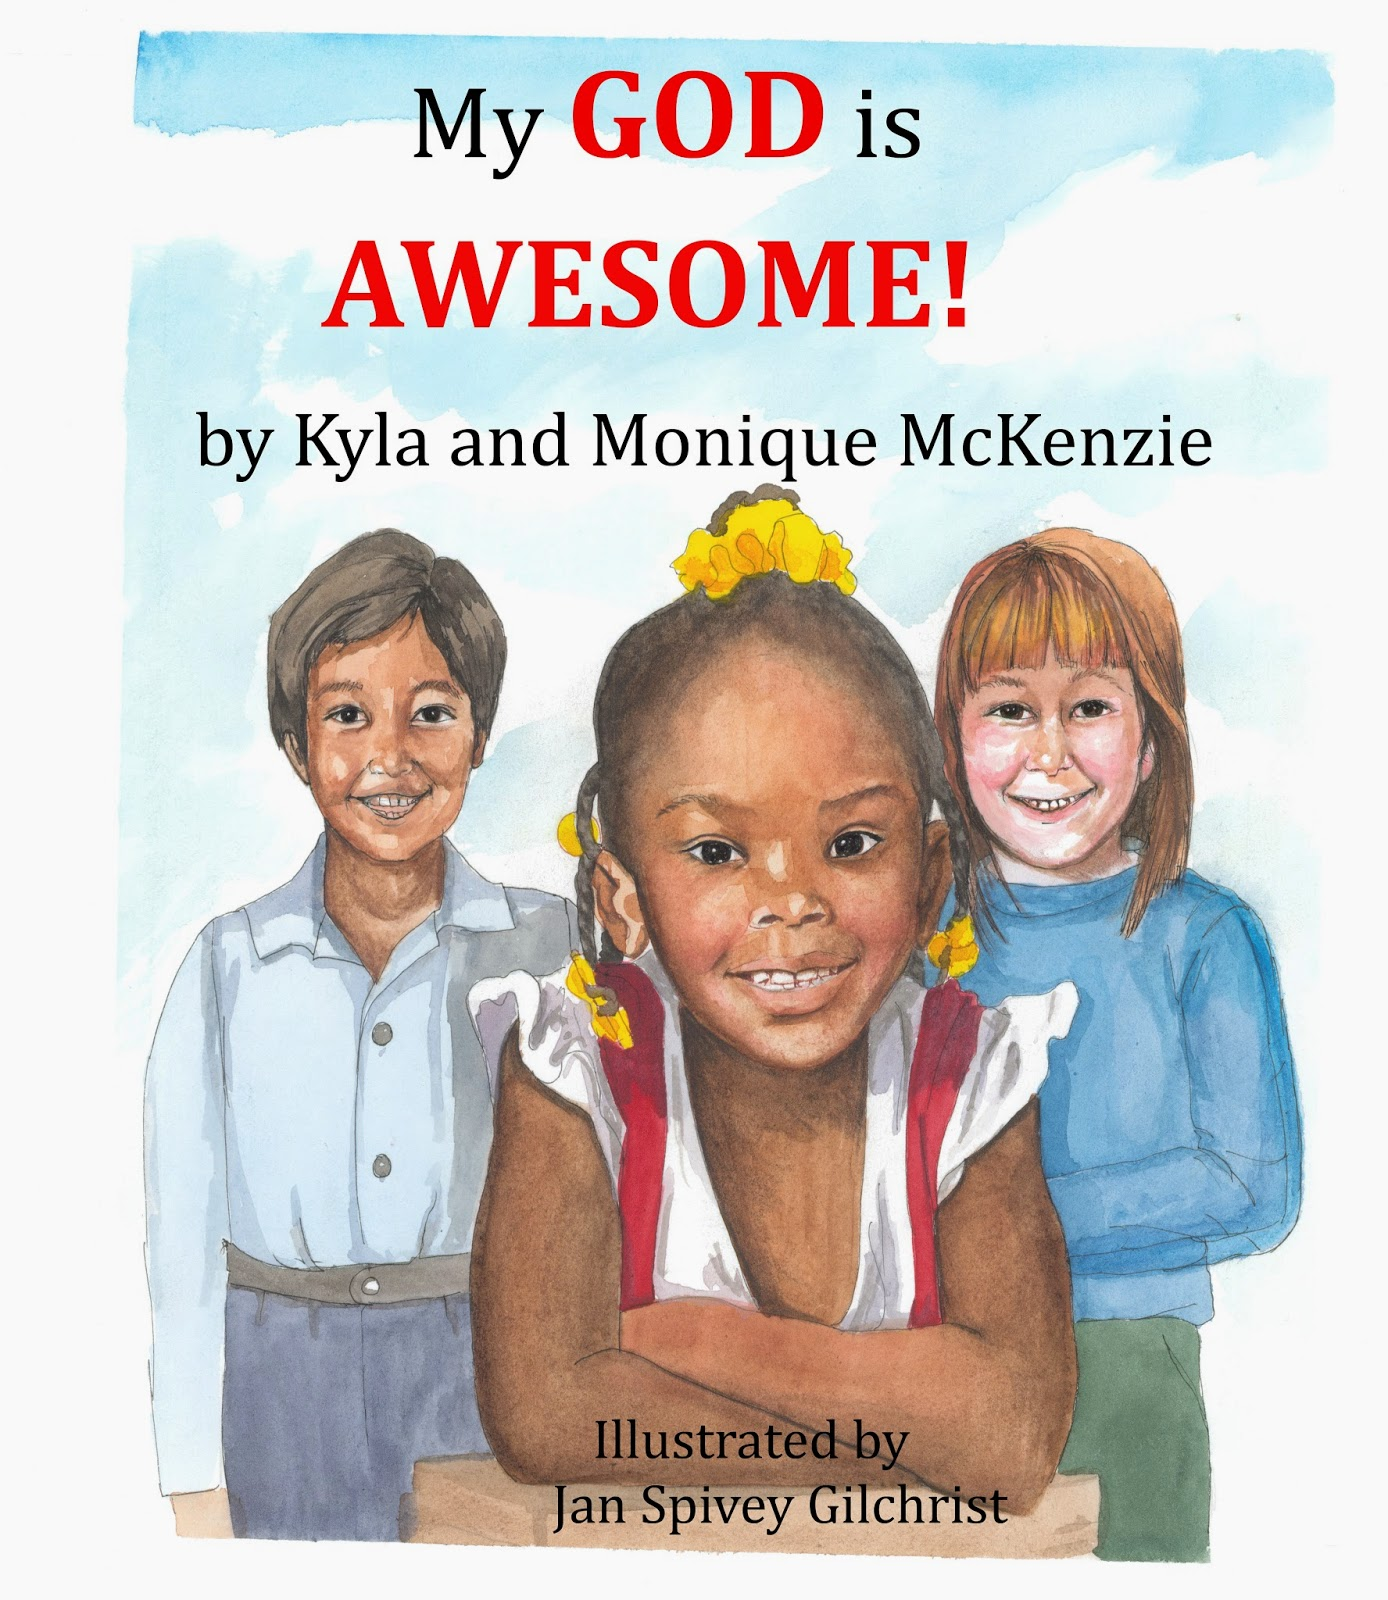 My God is Awesome, Poetry, Children's Picture Book, Kyla McKenzie, Monique McKenzie